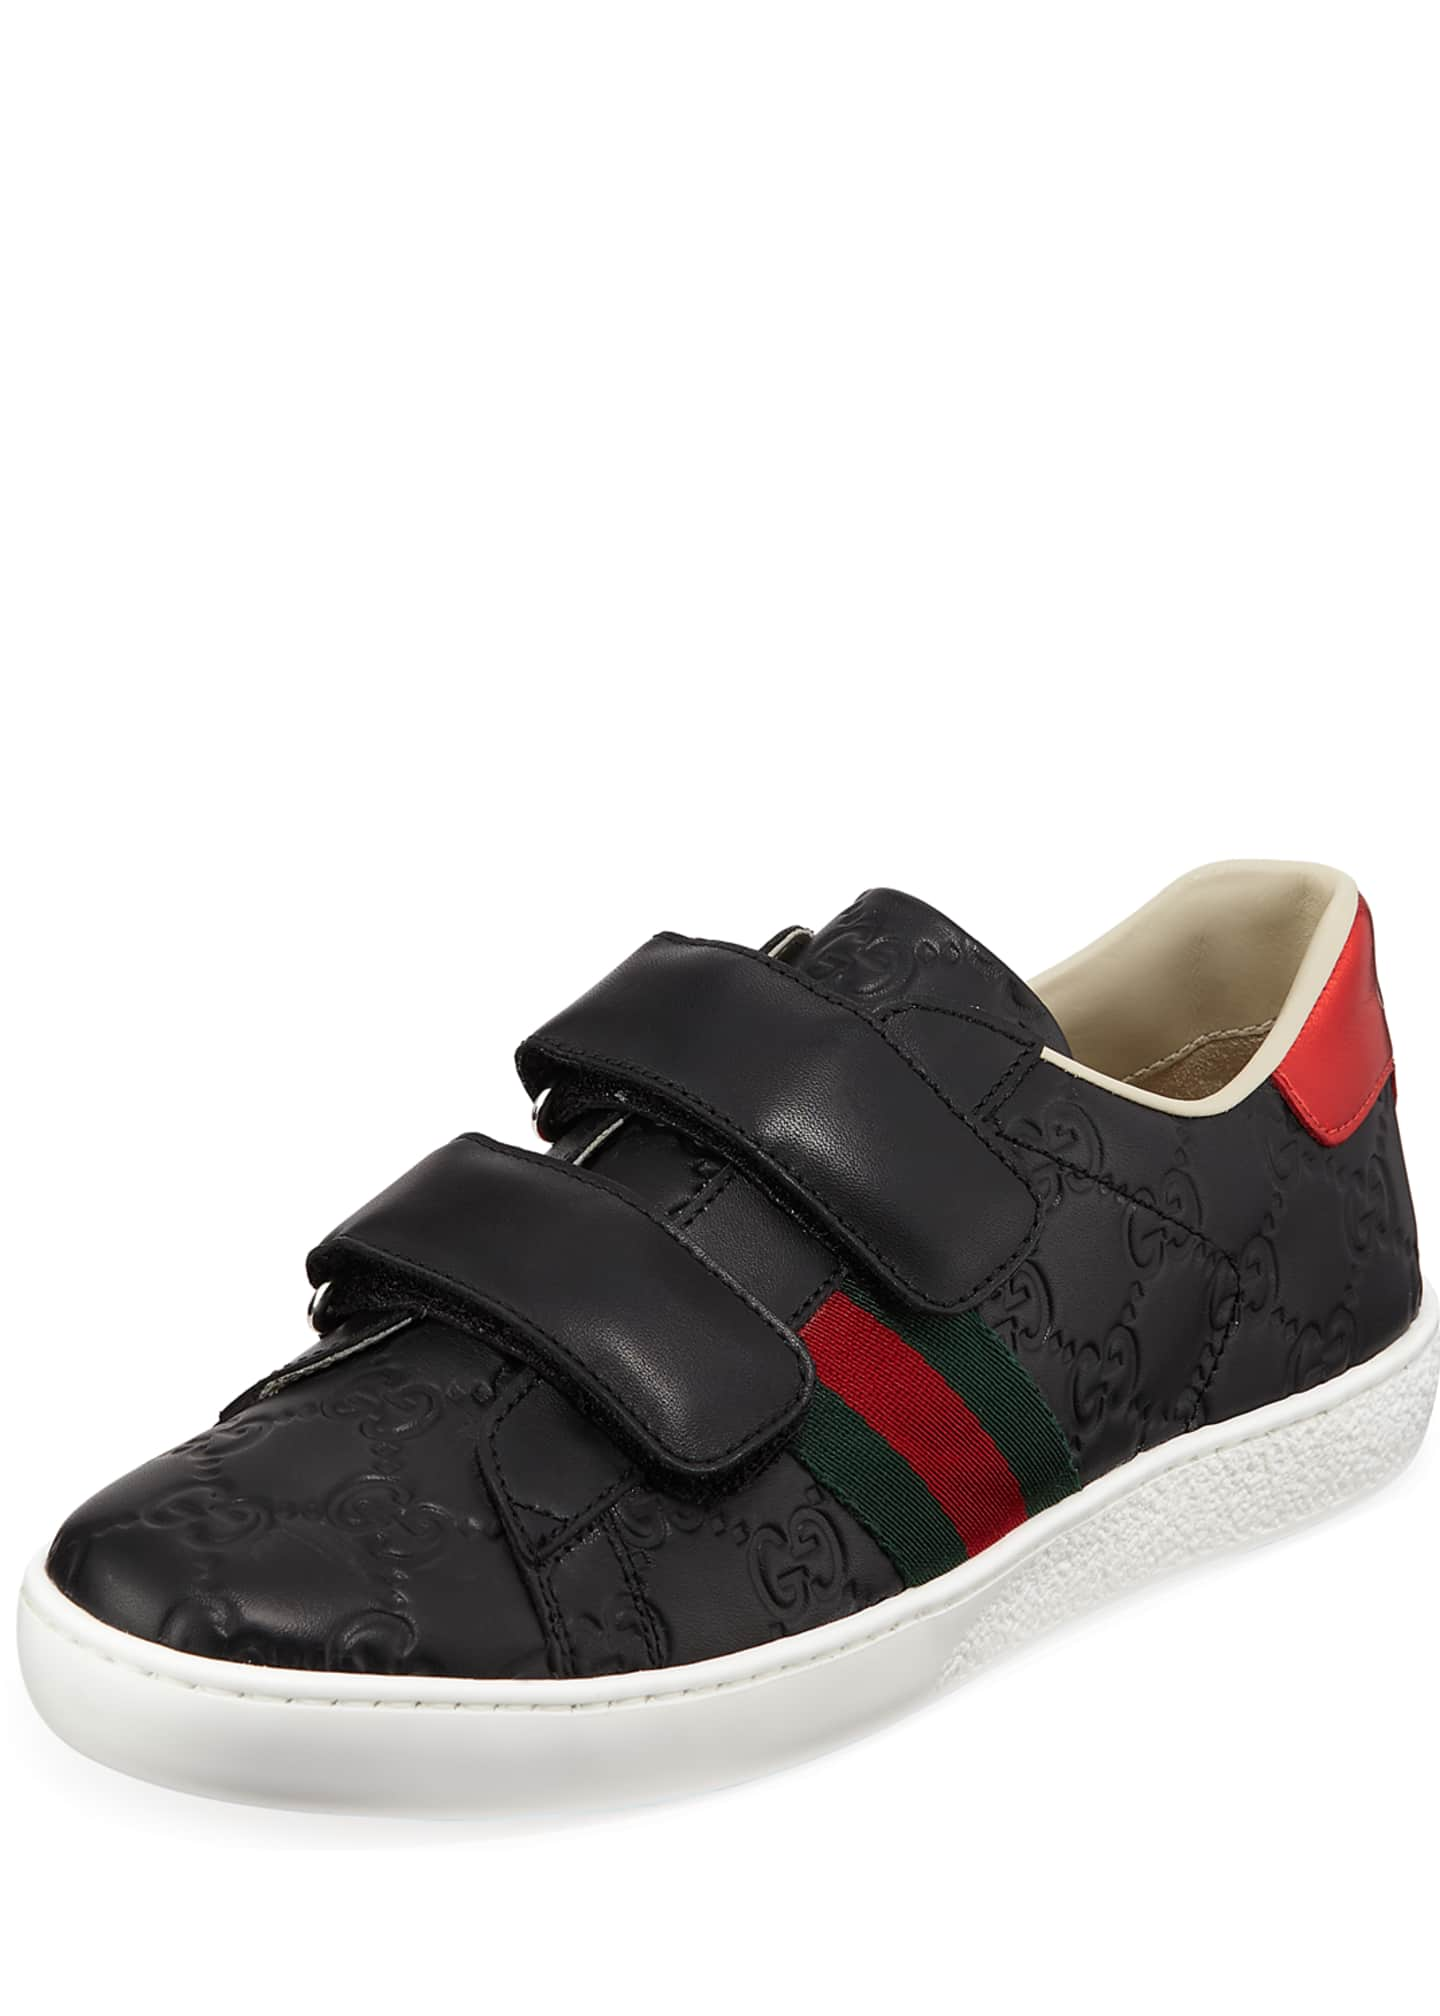 Gucci New Ace GG Supreme Leather Sneakers, Kids